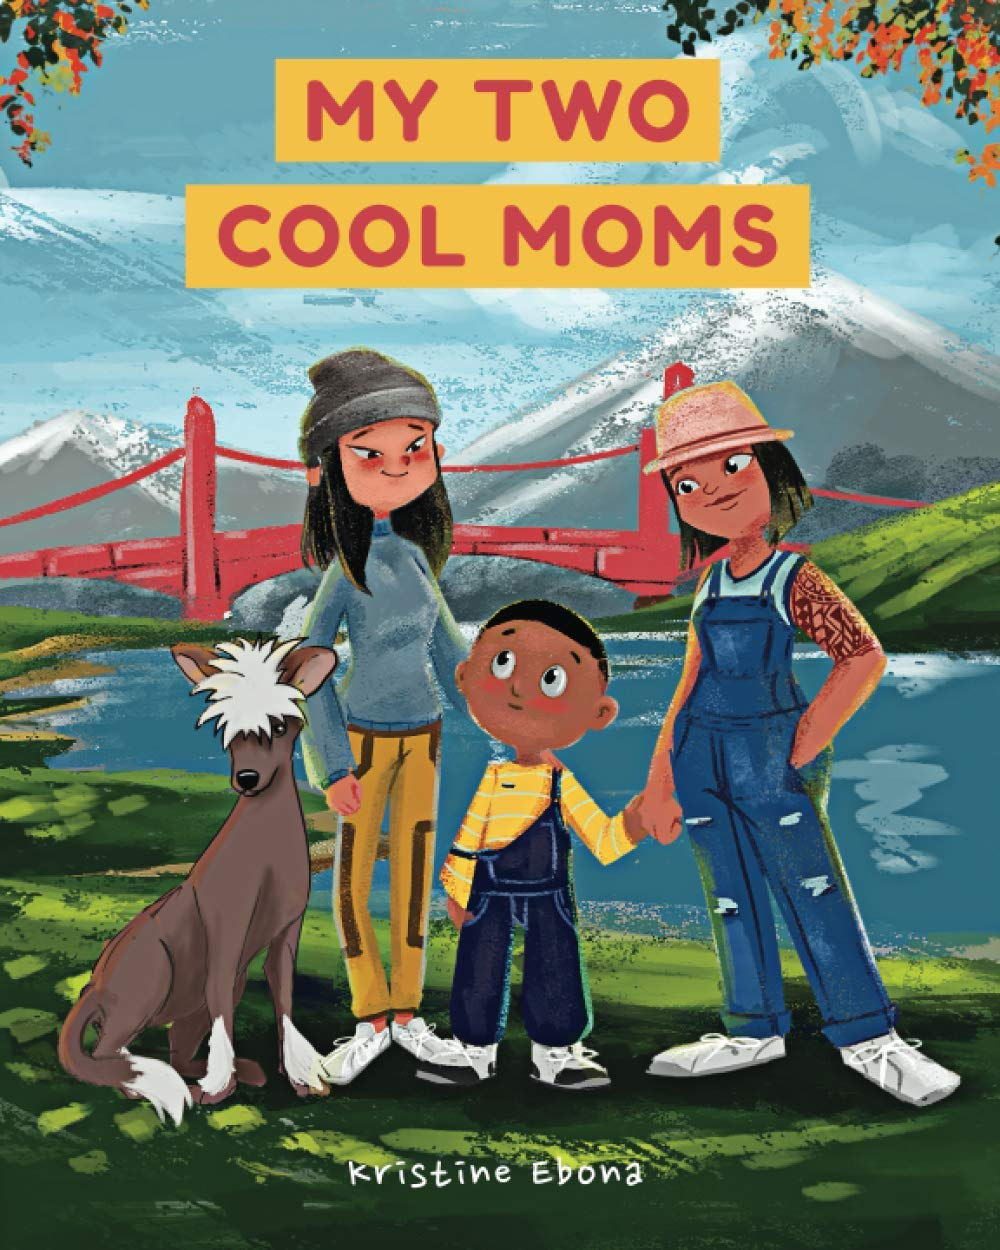 My Two Cool Moms, book cover